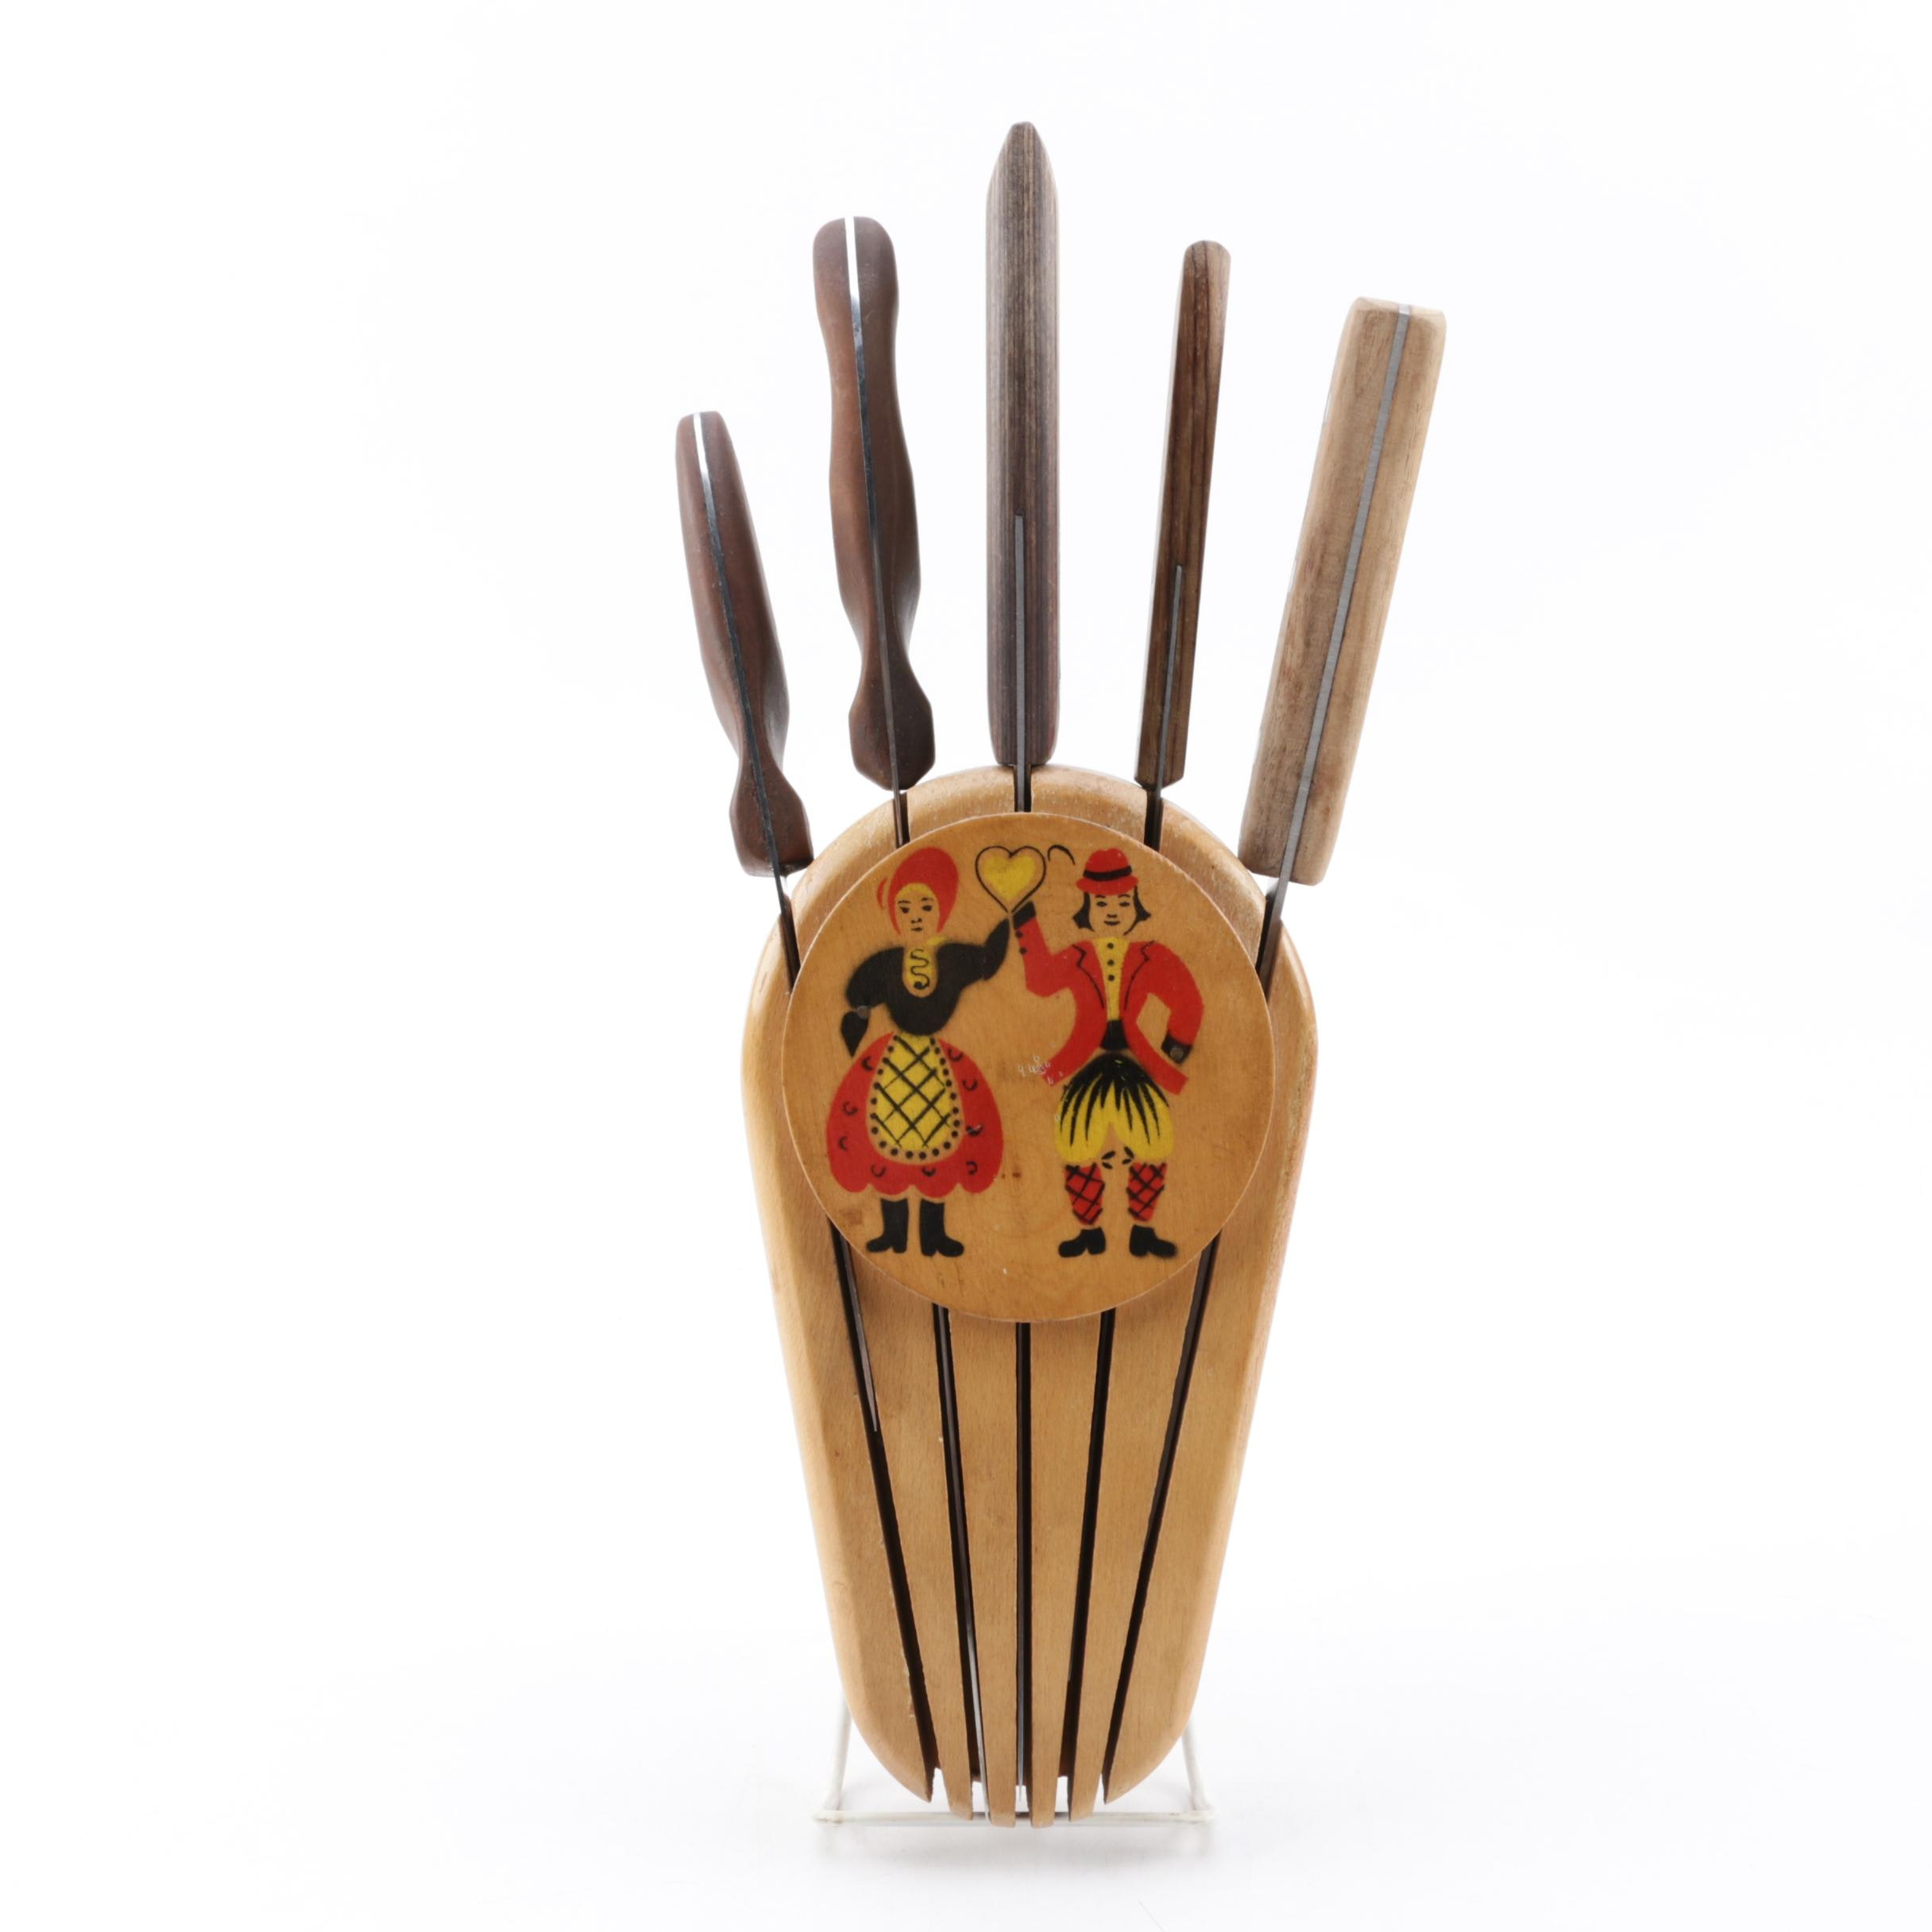 Yugolsavian Folk Art Wooden Knife Block with Kitchen Knives including Cutco